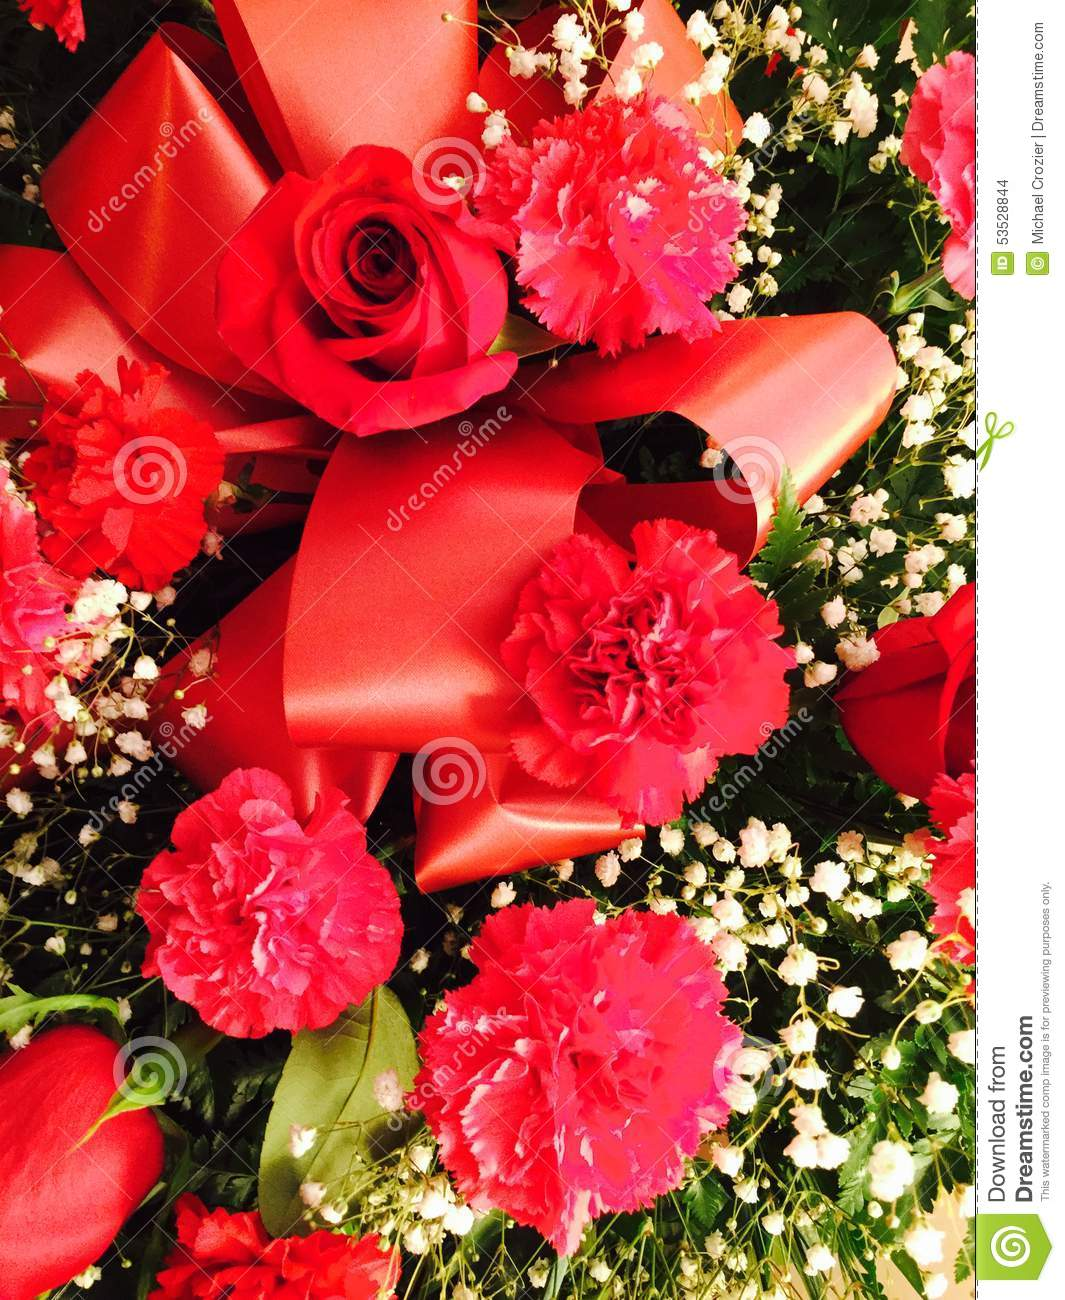 red rose and carnation floral bouquet stock photo image of